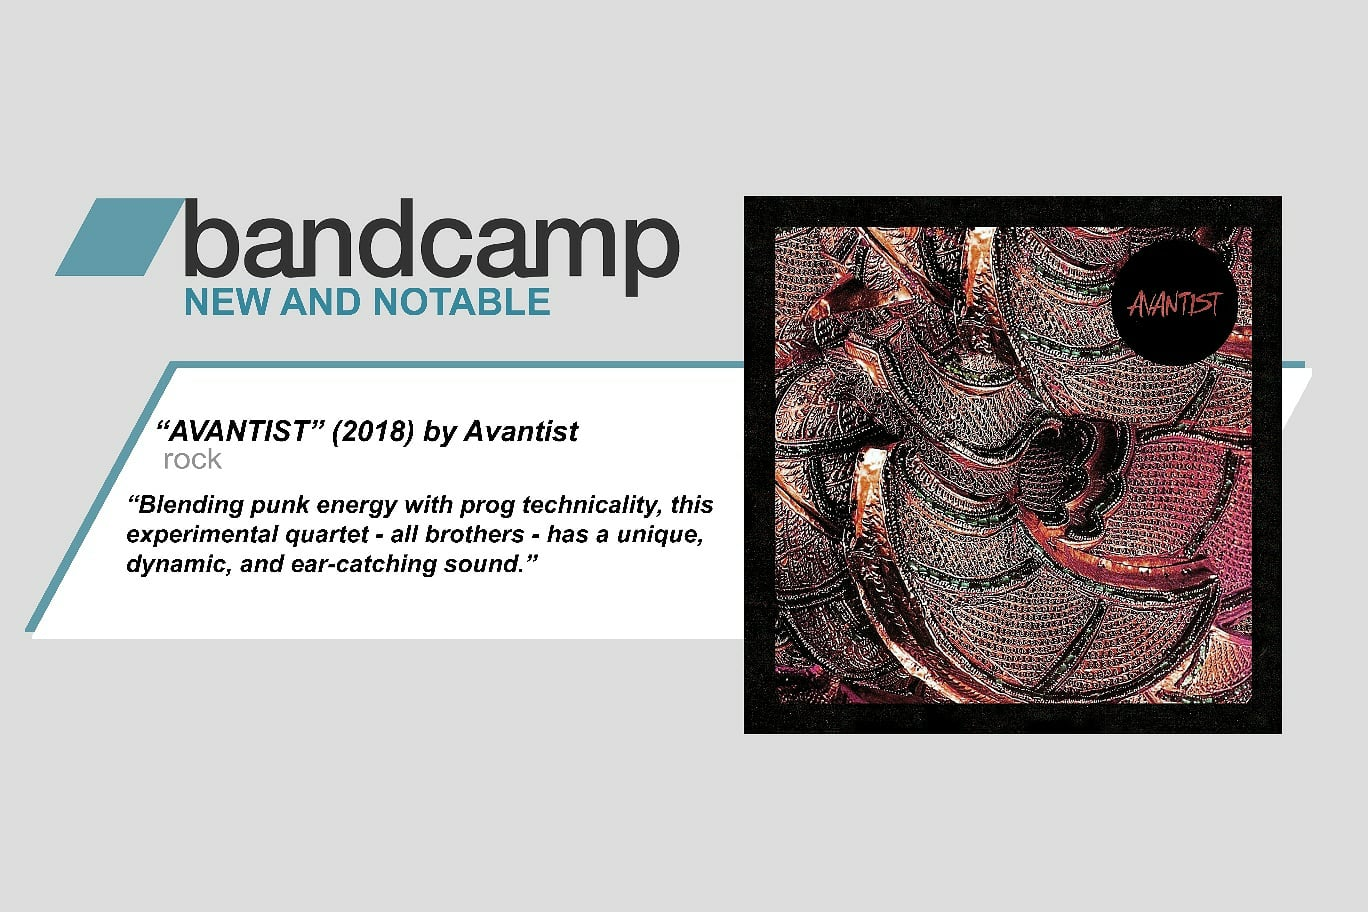 Avantist got featured on bandcamp's